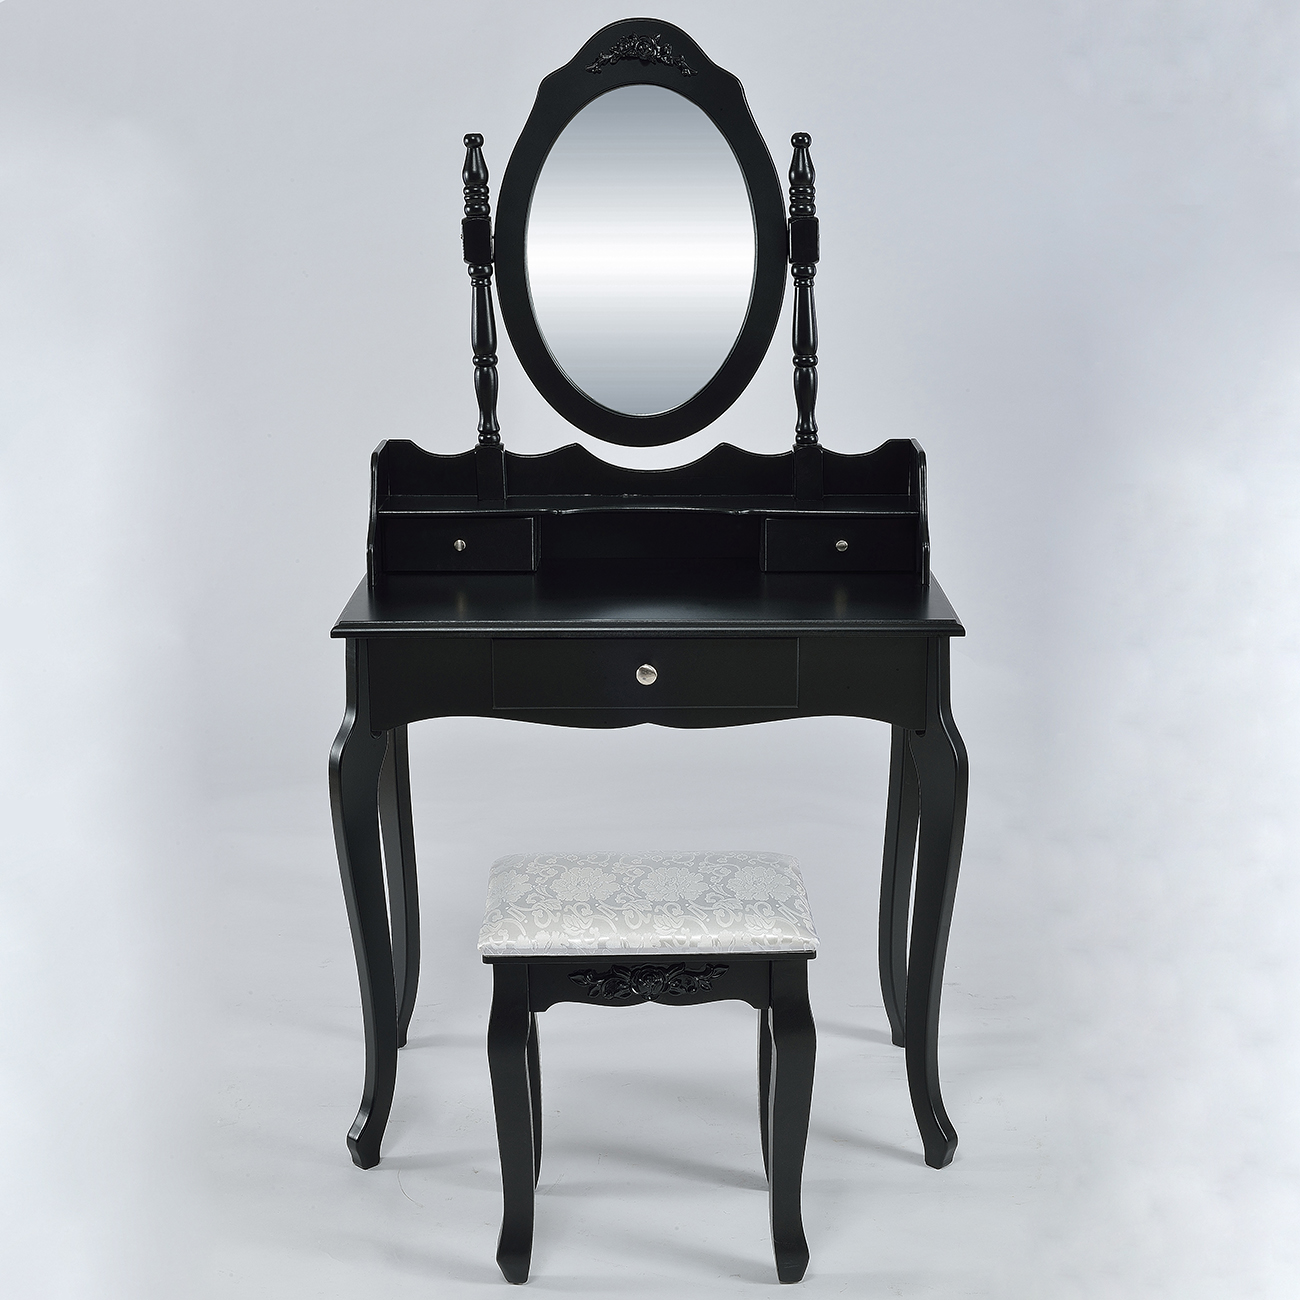 NEW 3 Drawer Mirror Makeup Vanity Jewelry Table Set With